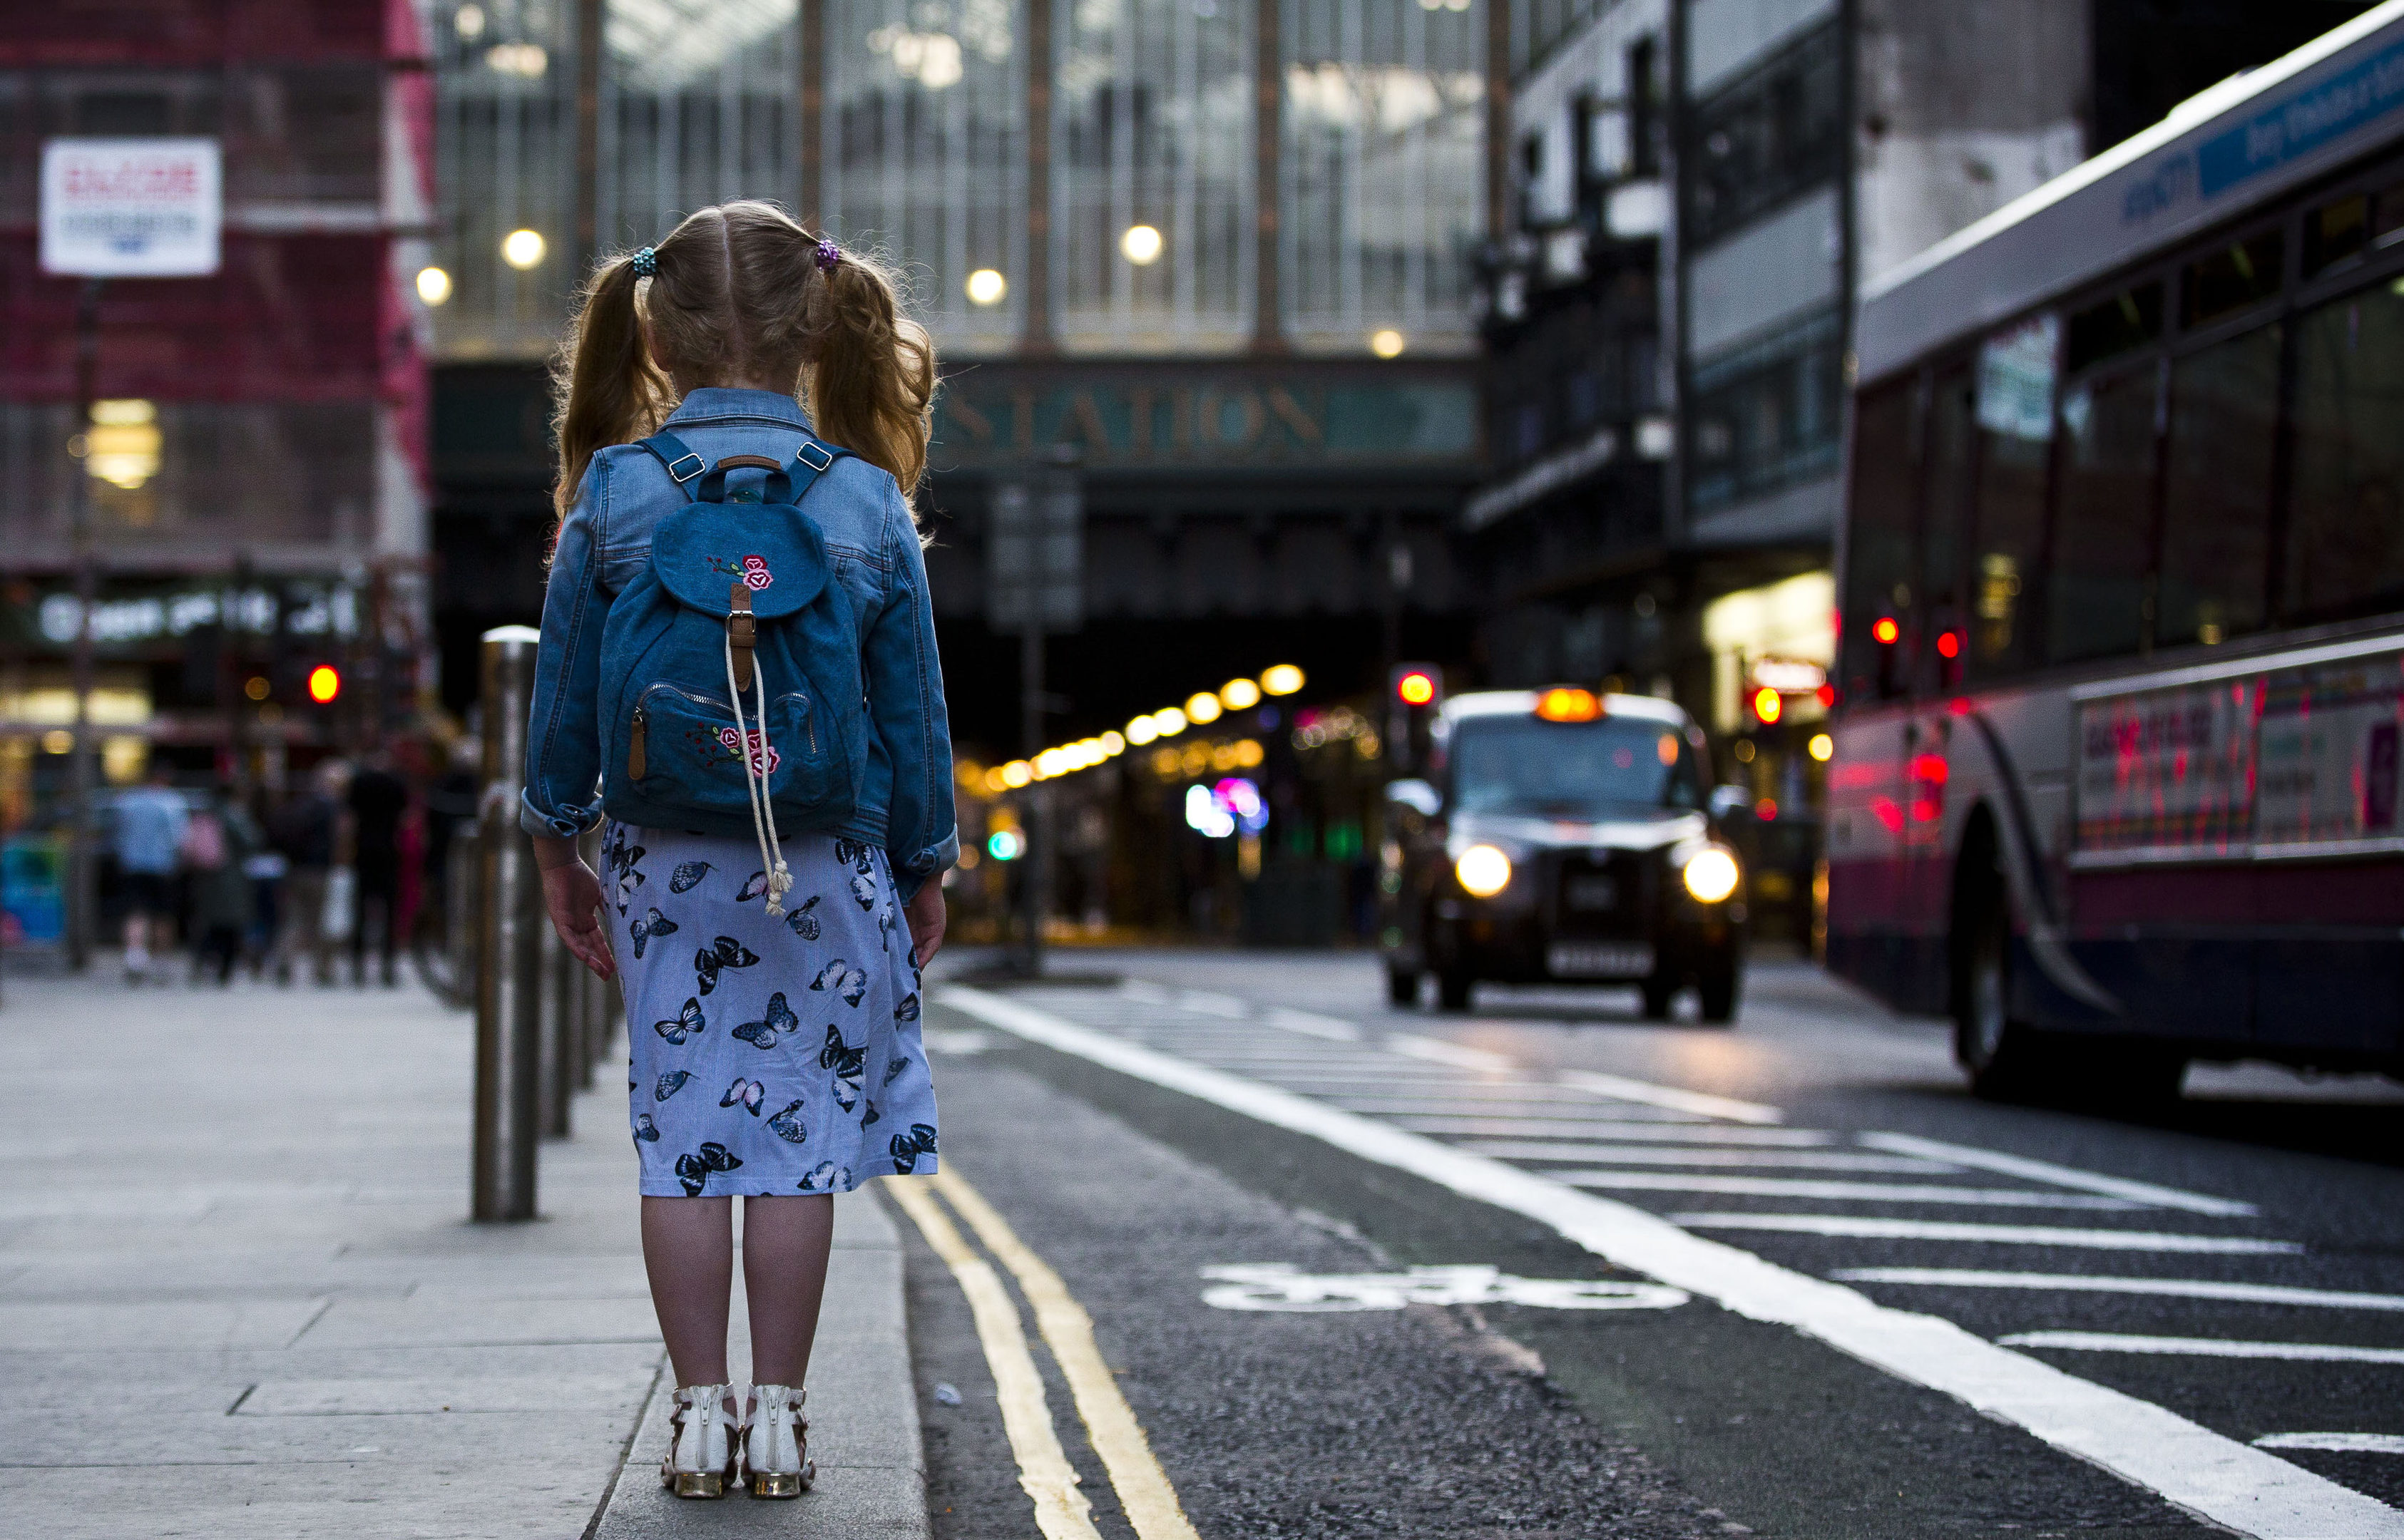 A little girl near the Four Corners in Glasgow, where Sarah says lost teens are at risk after blighted childhoods (Photo by James Williamson)